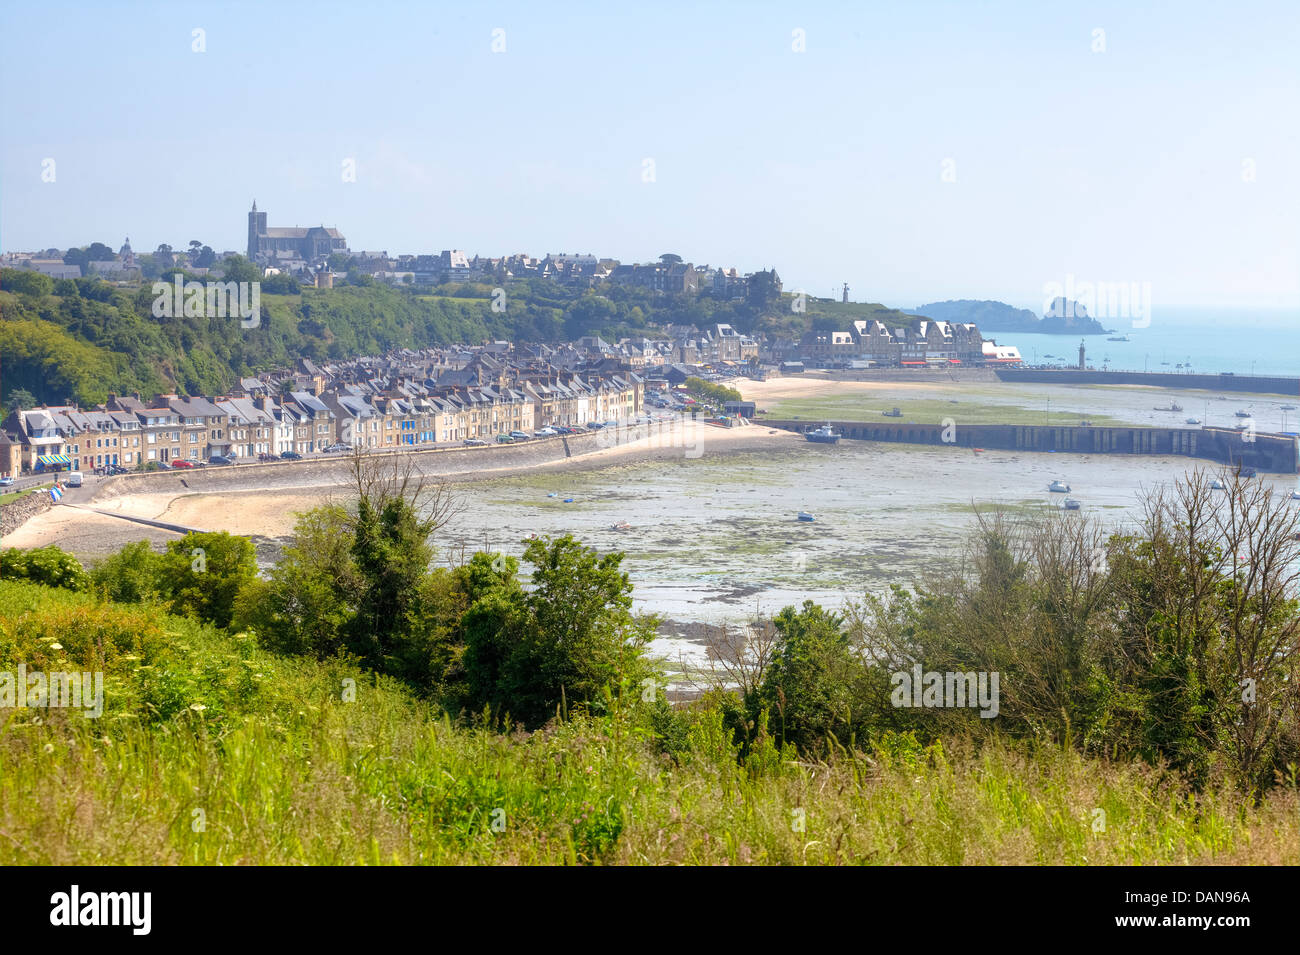 Cancale, Brittany, France - Stock Image